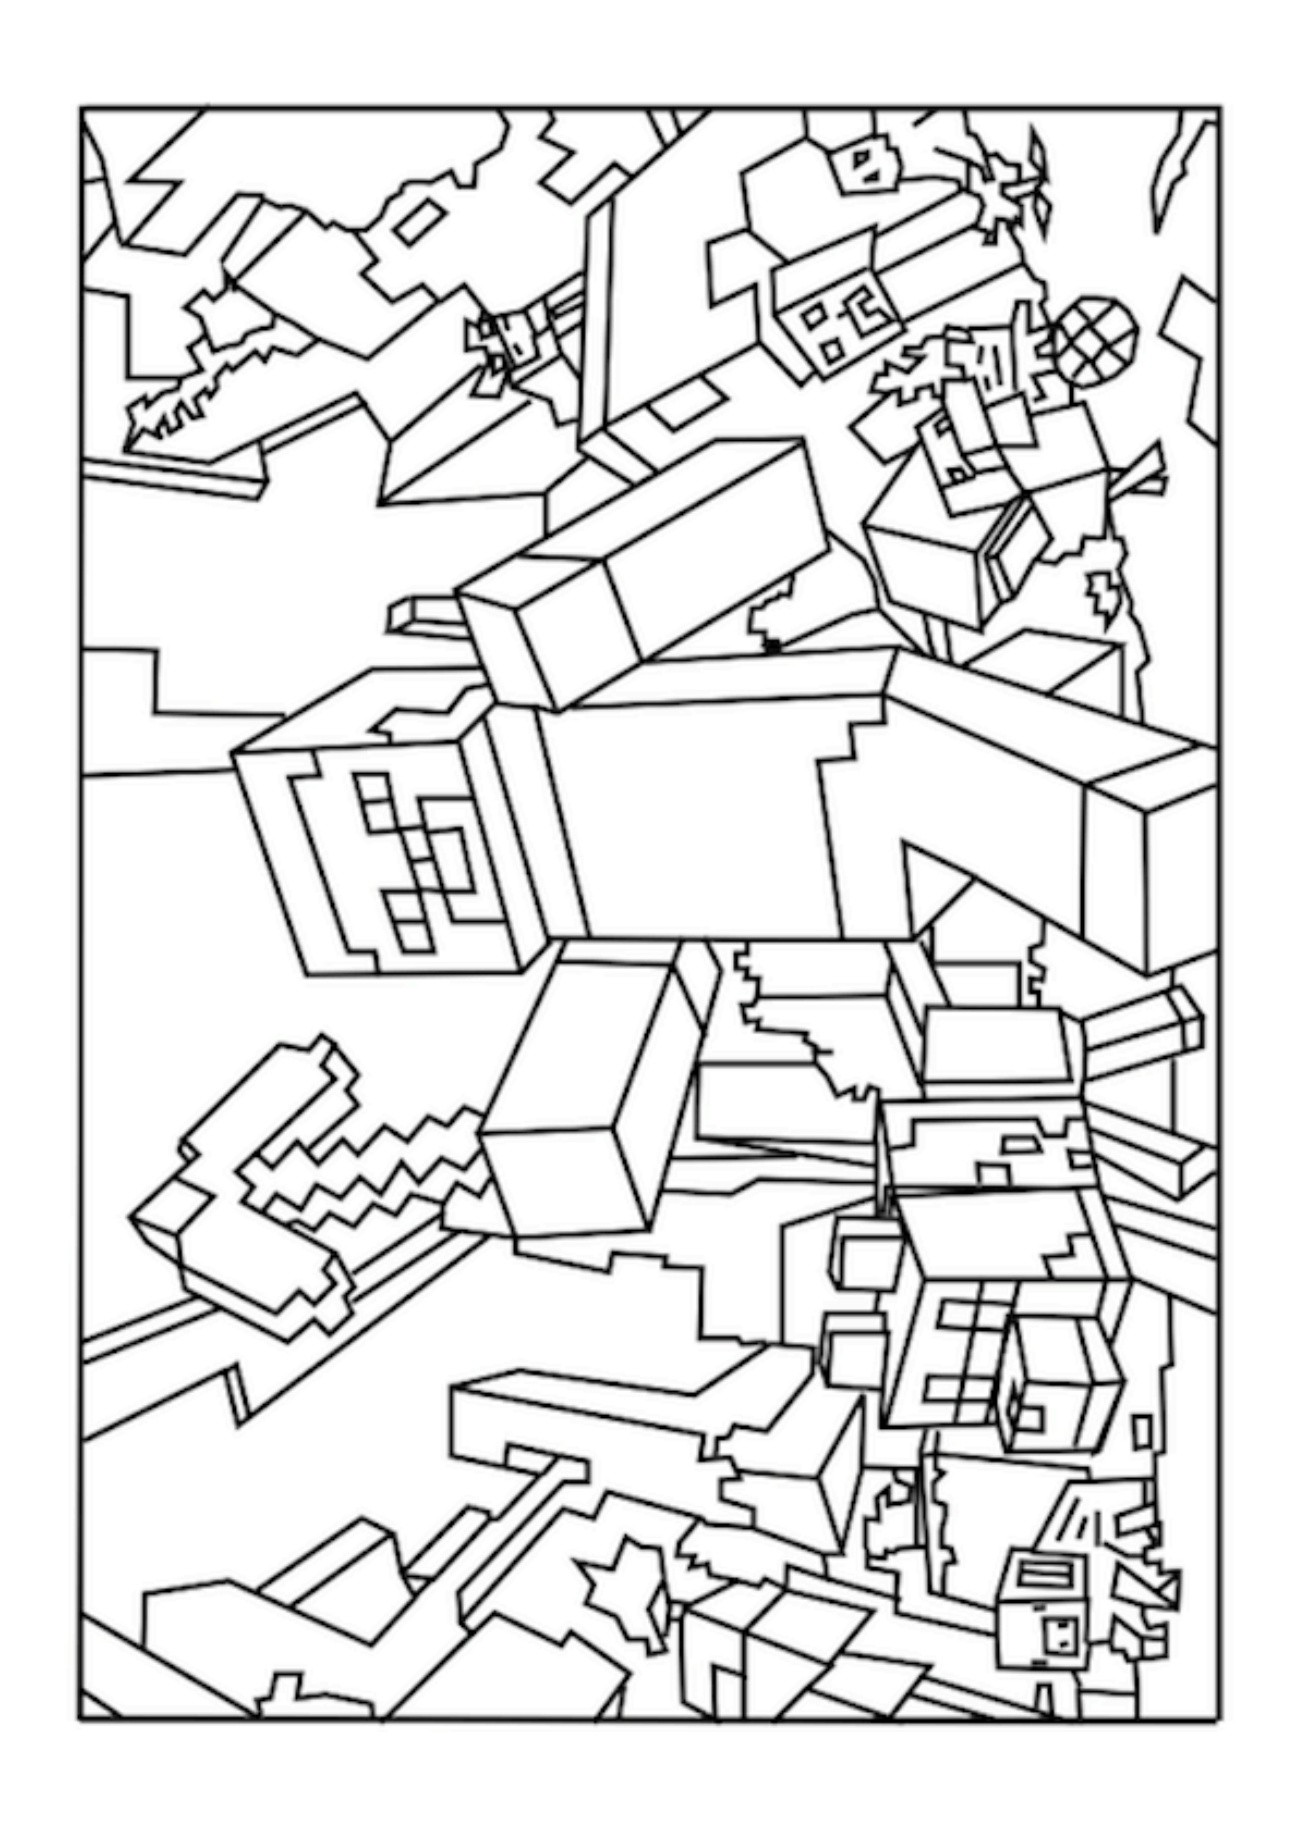 lego minecraft coloring pages minecraft lego coloring pages at getcoloringscom free pages coloring minecraft lego